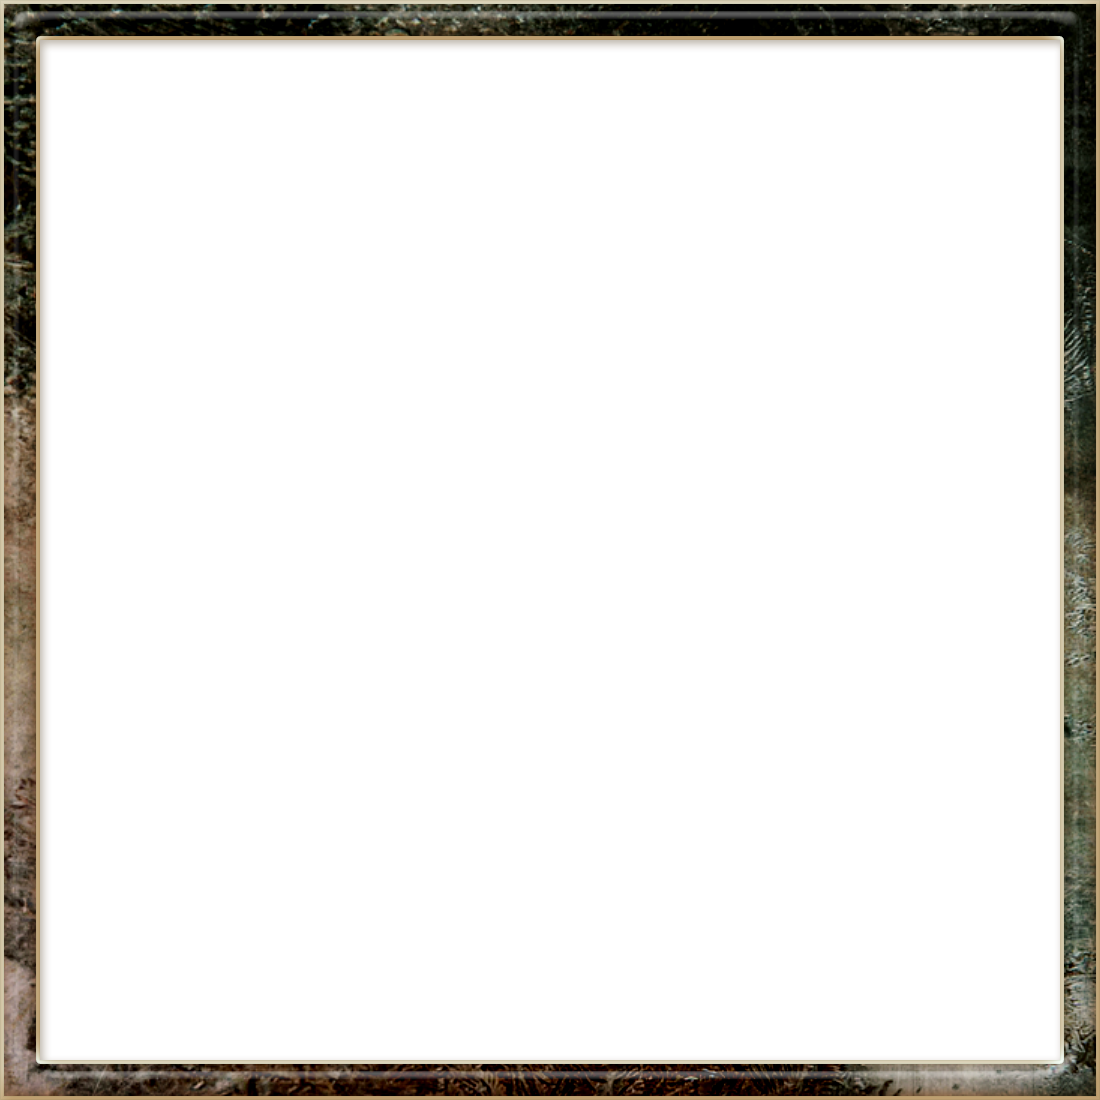 Square Png image #25145